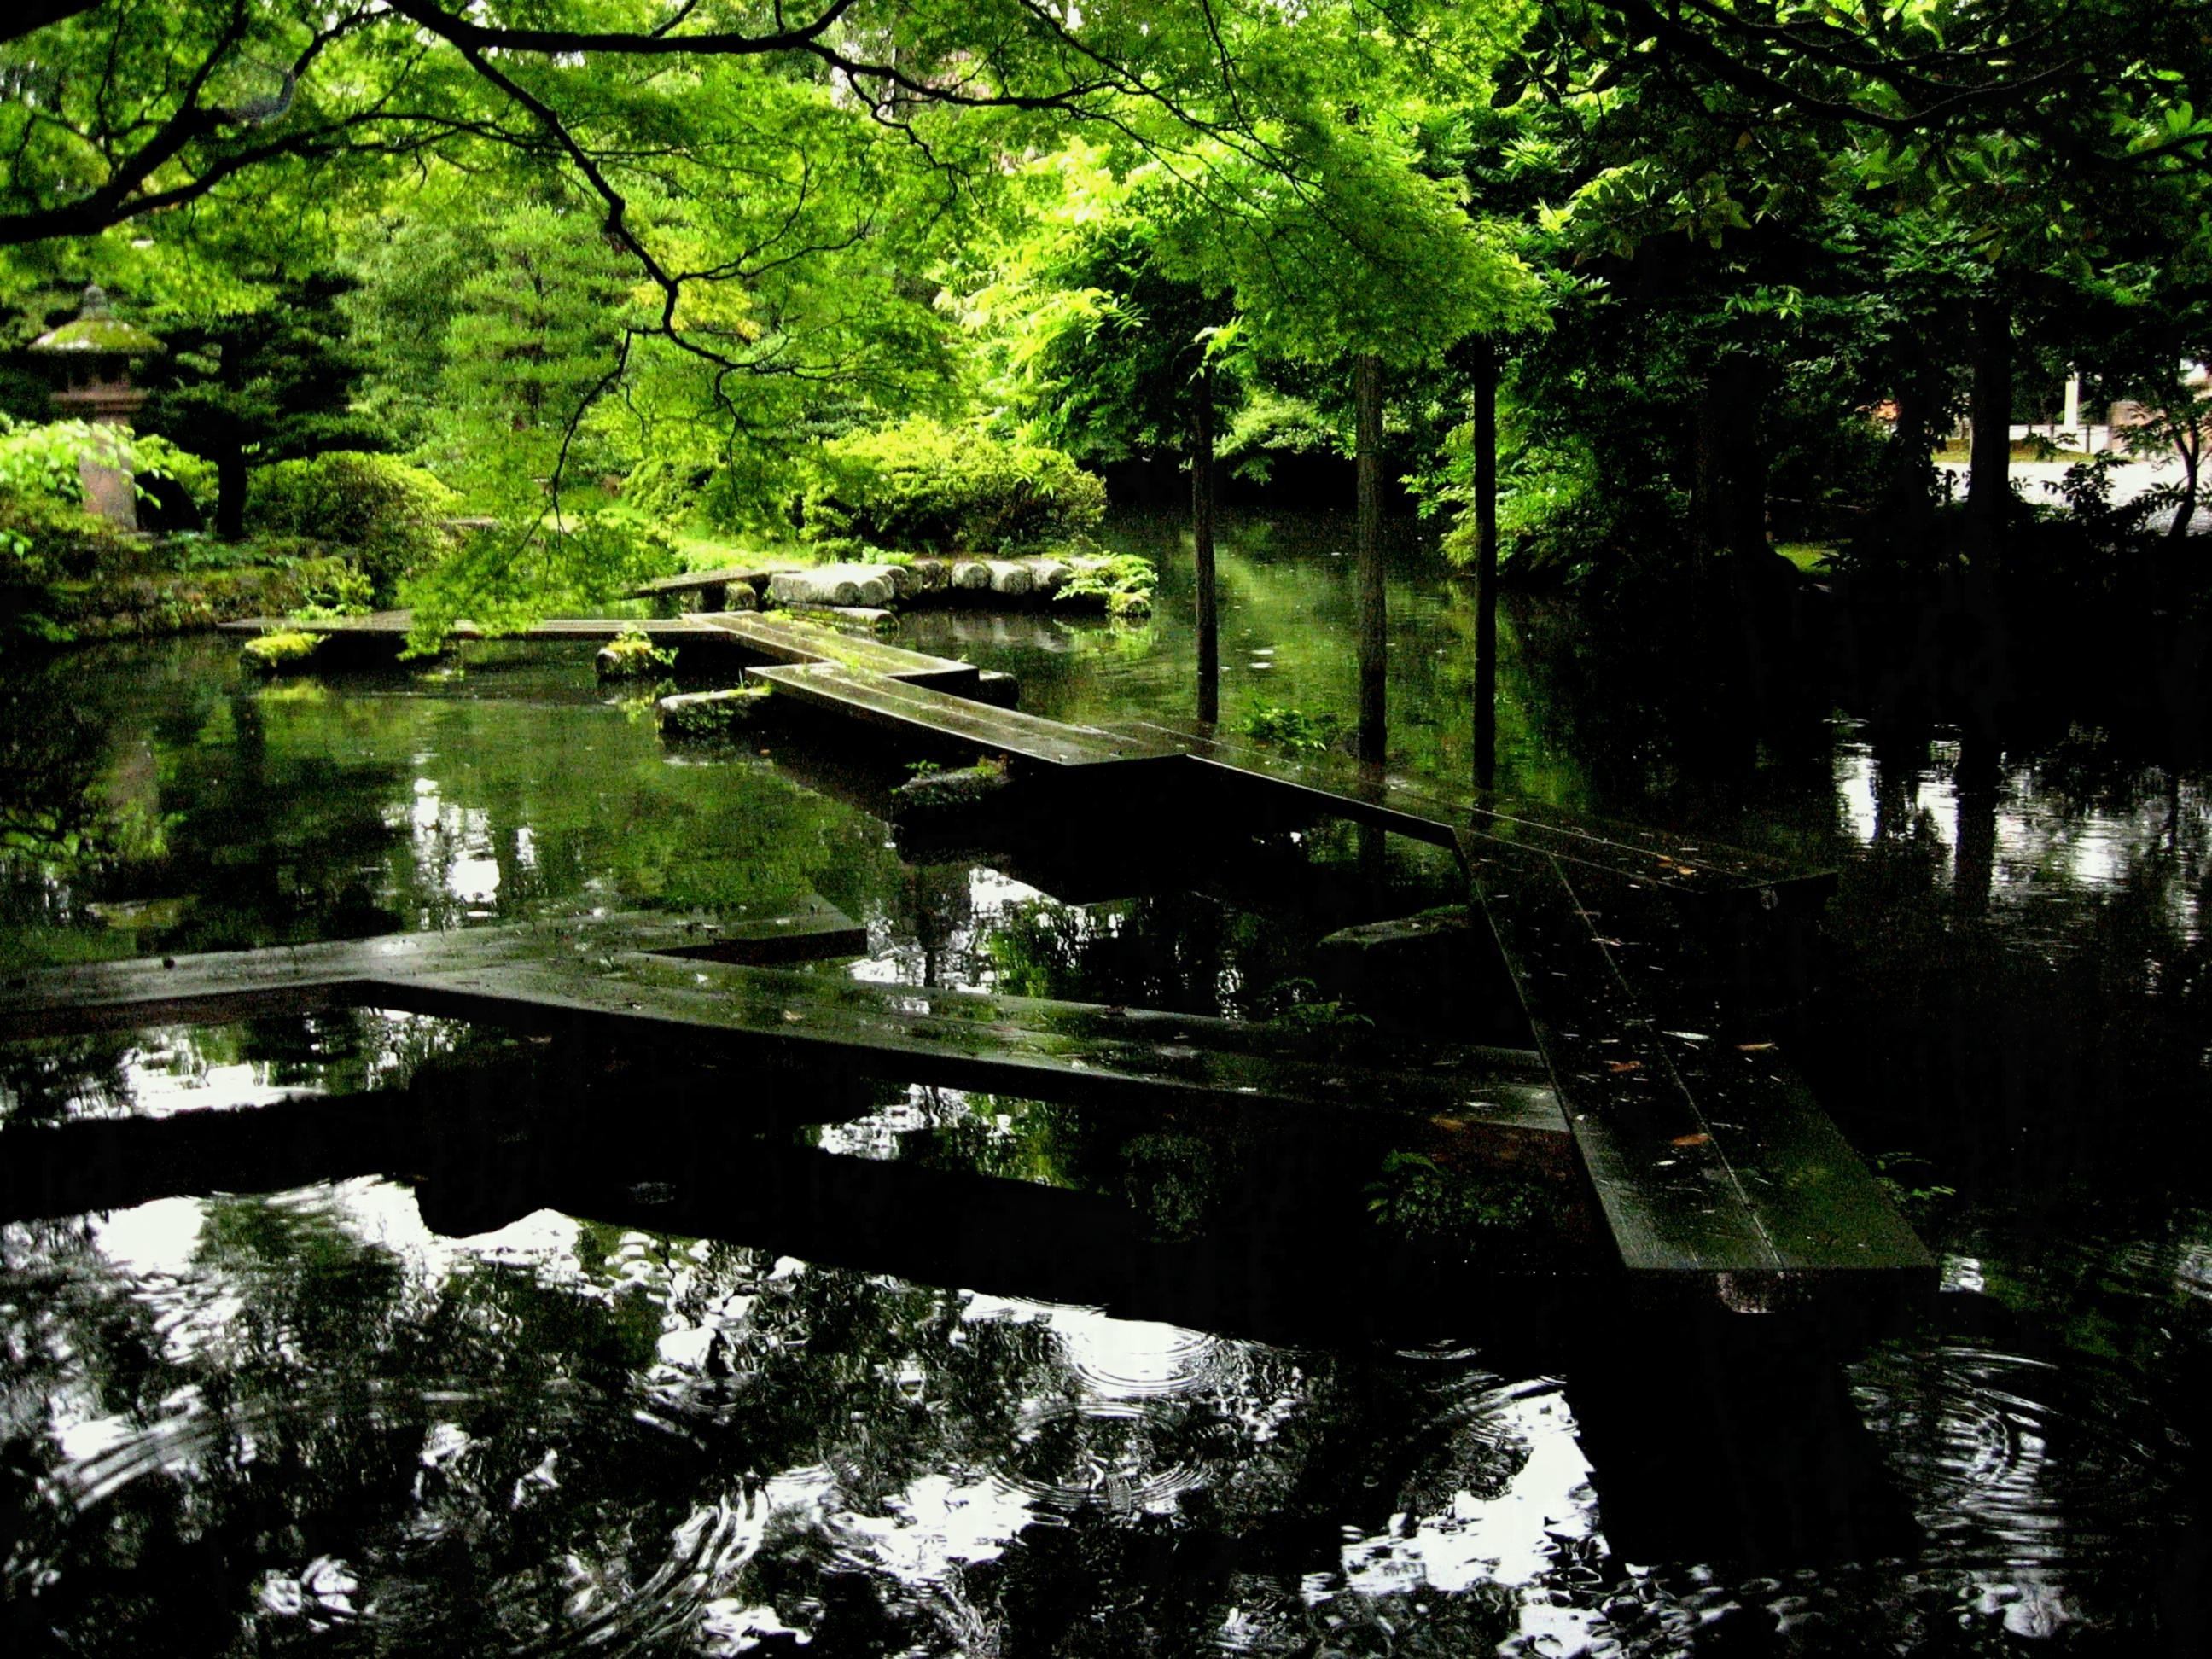 Res: 2592x1944, Free Download Cute Japanese Gardens Images Garden Wallpaper